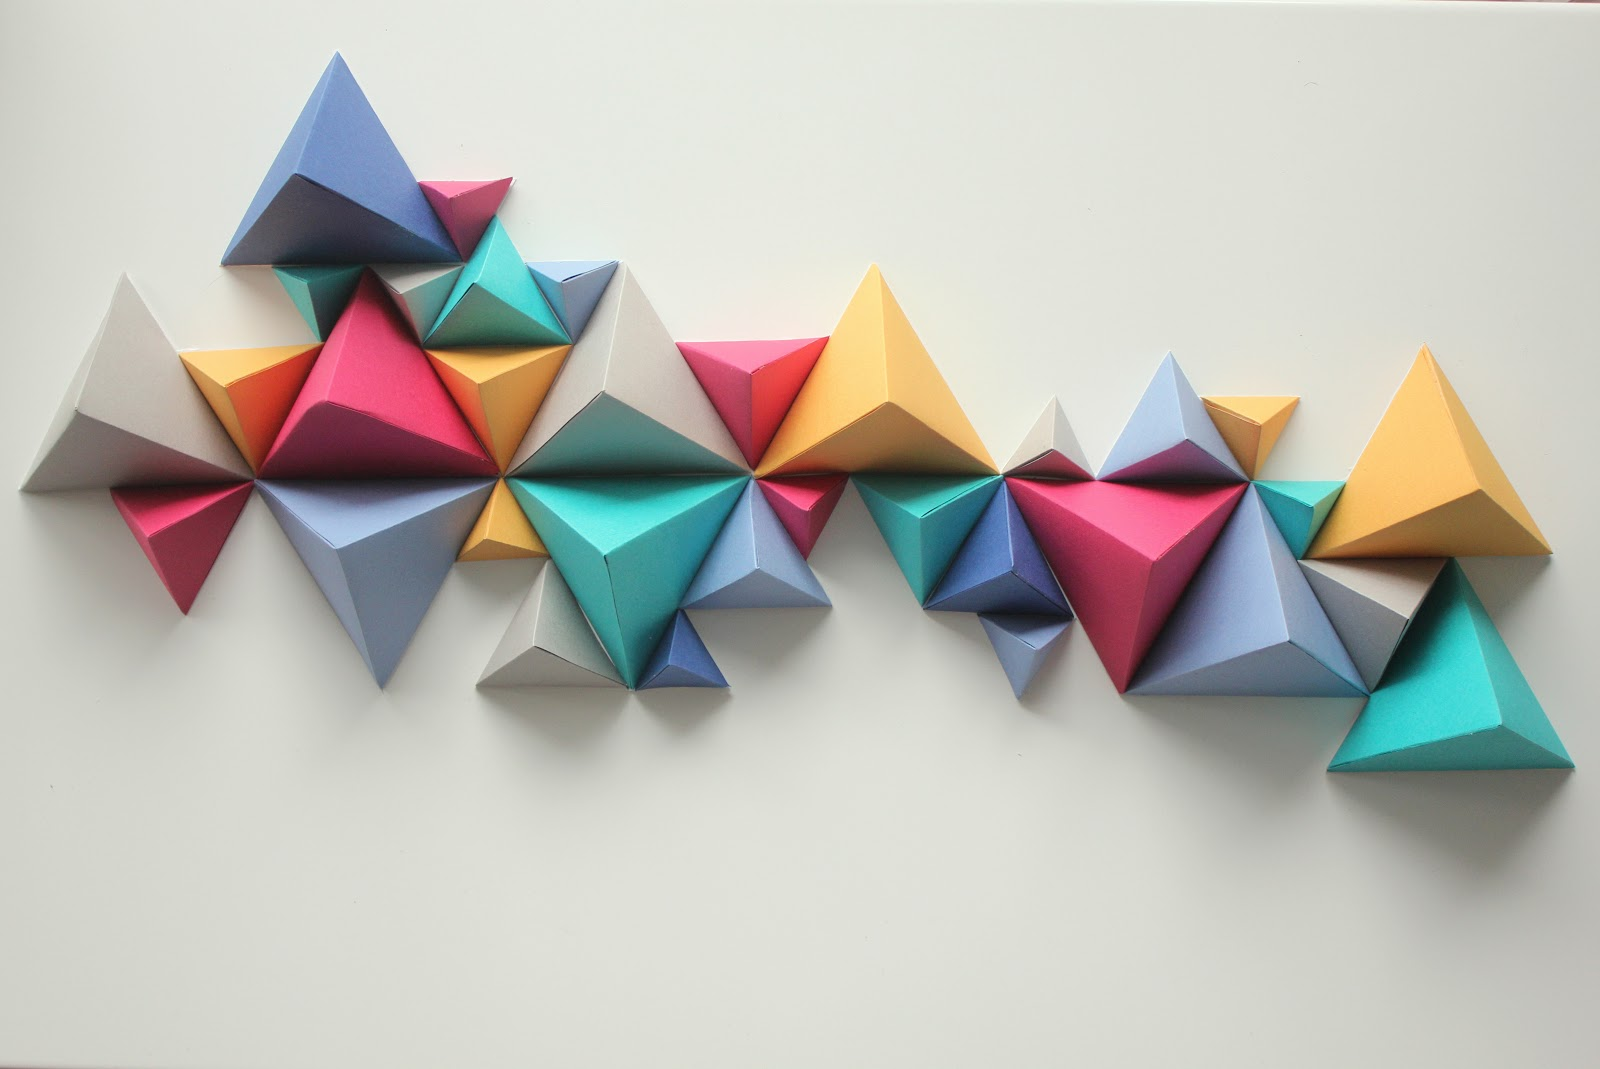 Diy jolie sculpture de pyramides le meilleur du diy - Decoration murale 3d ...